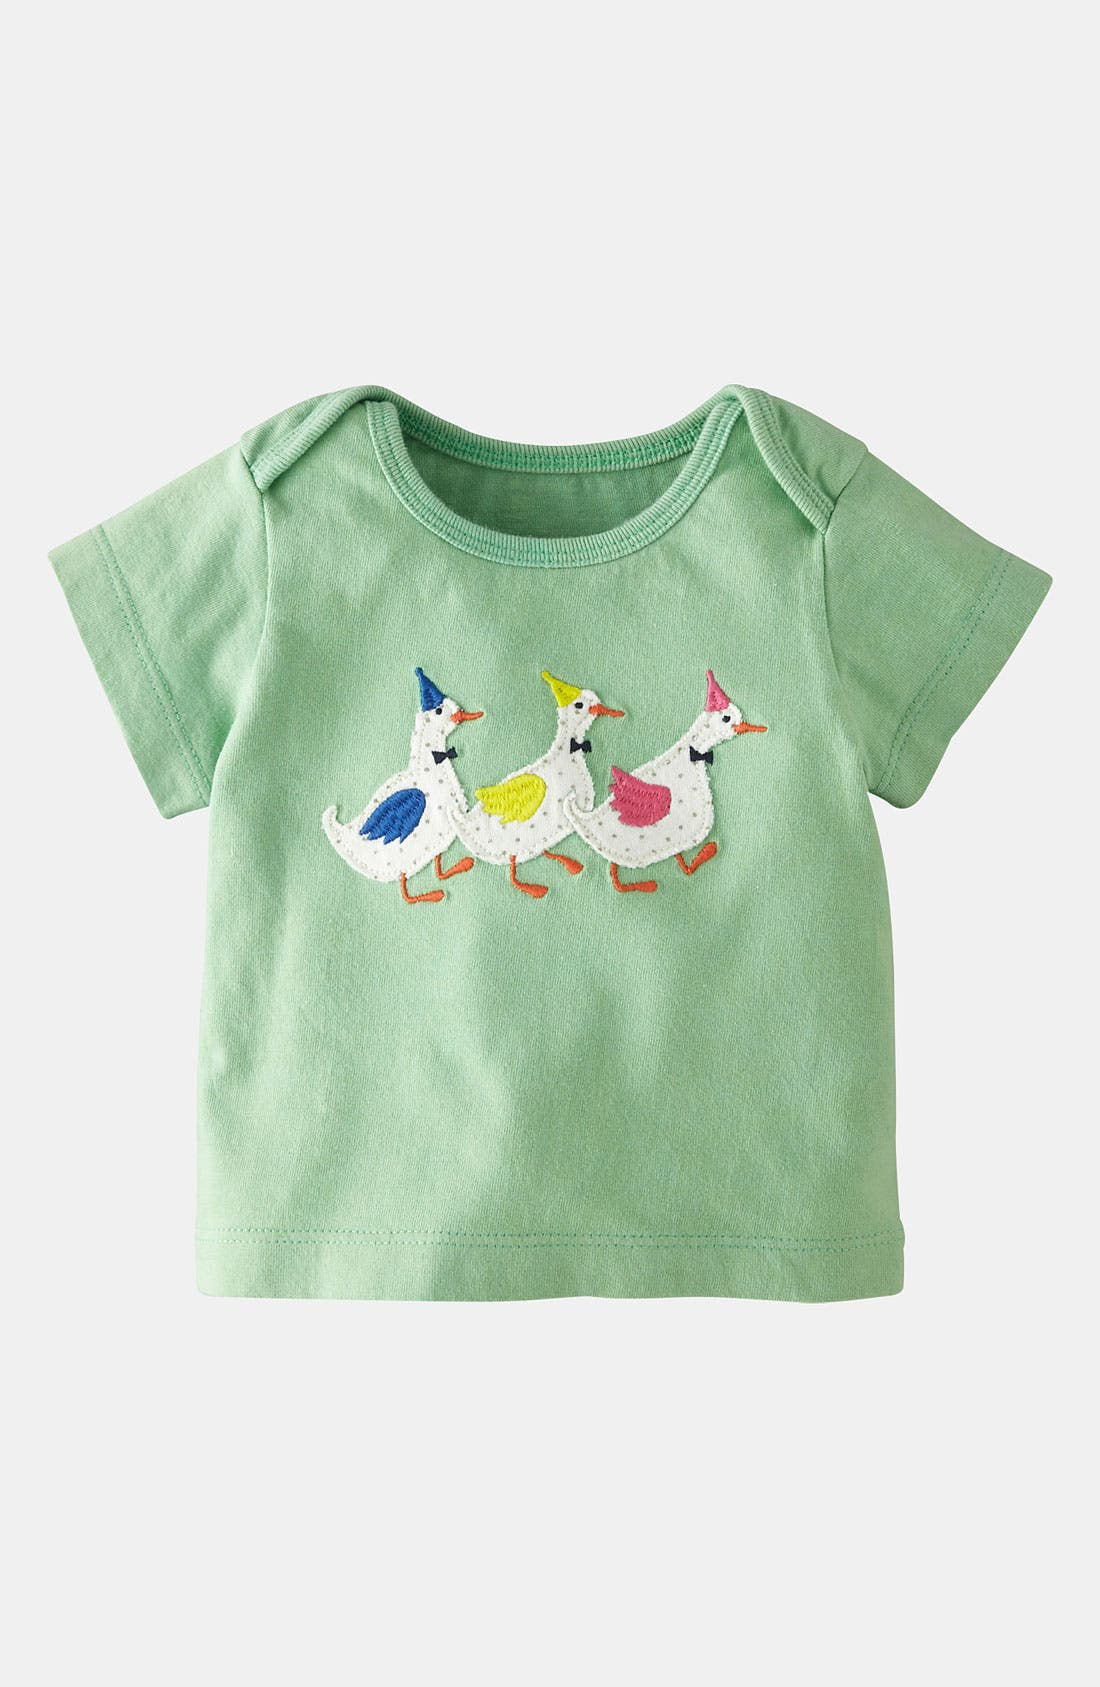 Main Image - Mini Boden 'Party Animals' Tee (Baby)